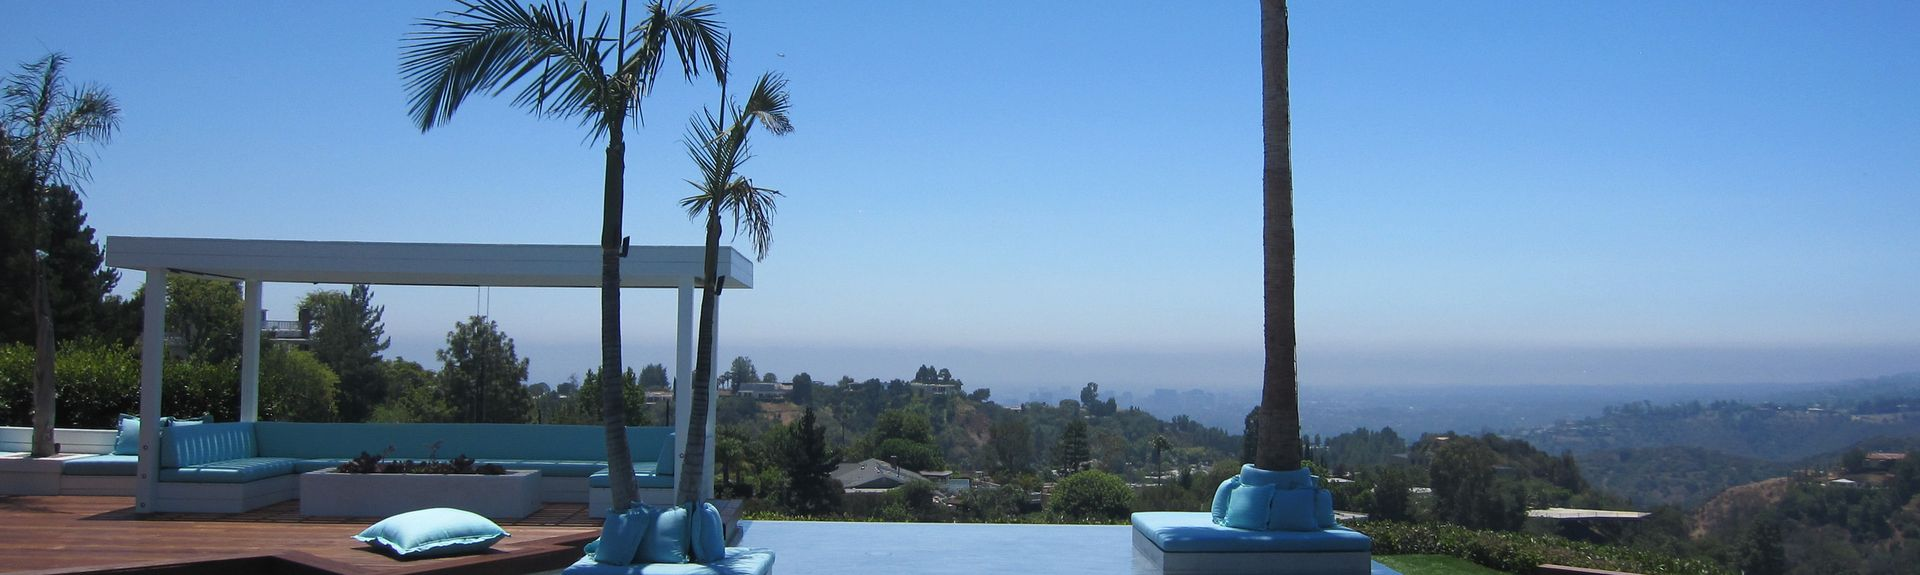 Trousdale Estates, Los Angeles, California, Forente Stater